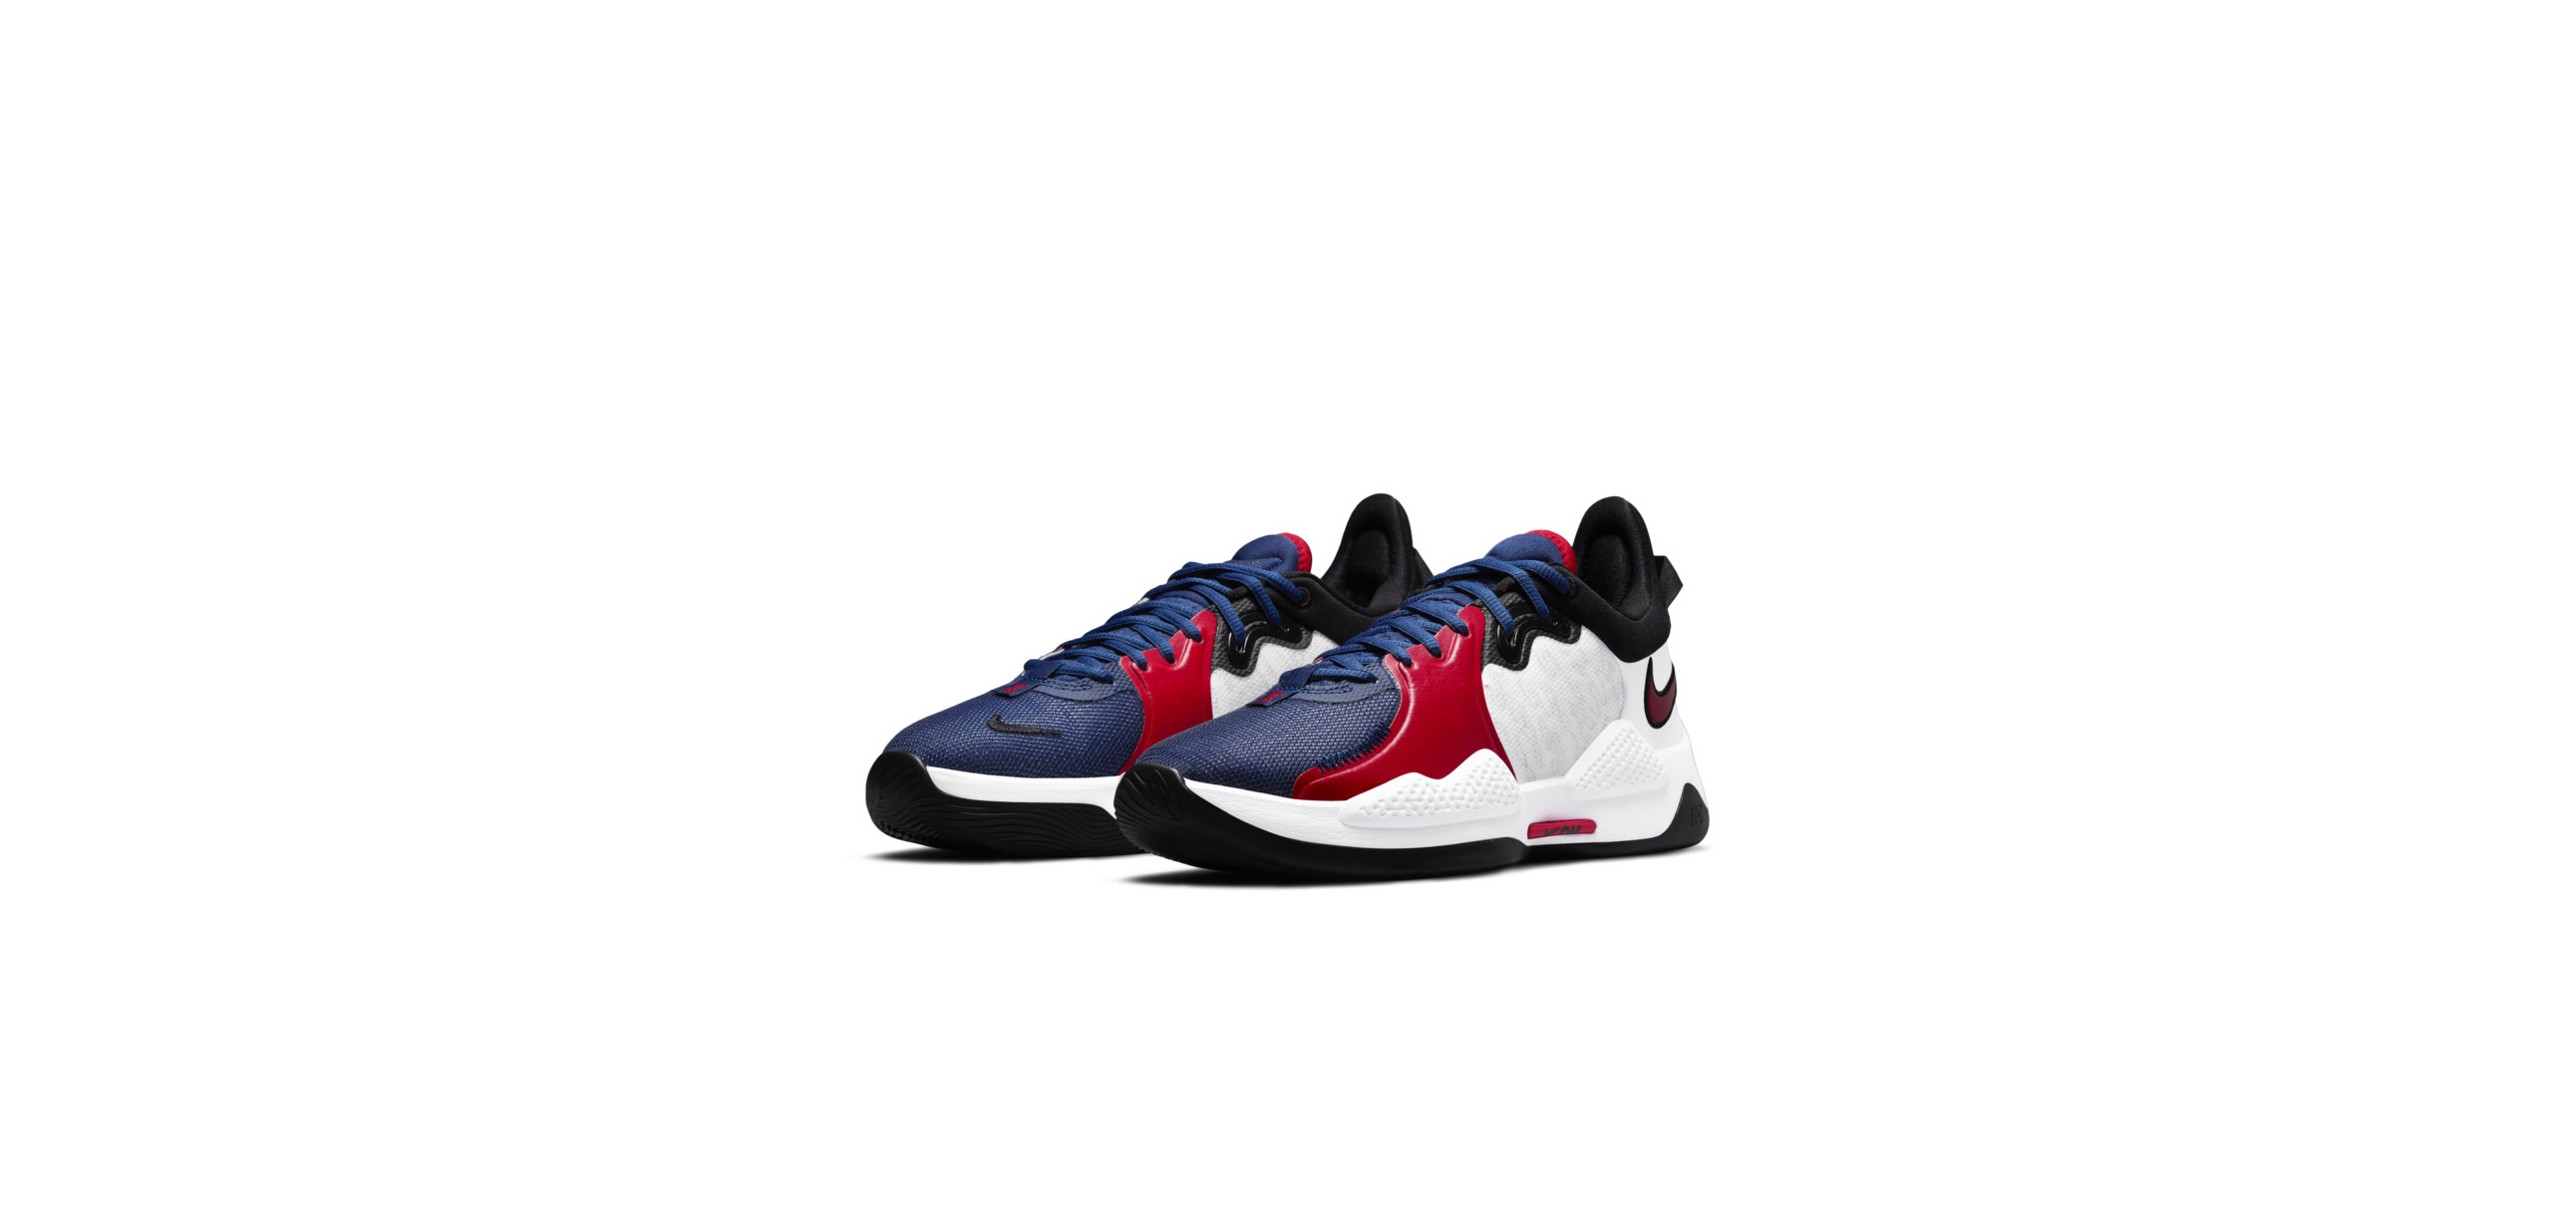 PG 5 White / Rush Blue / Black / University Red